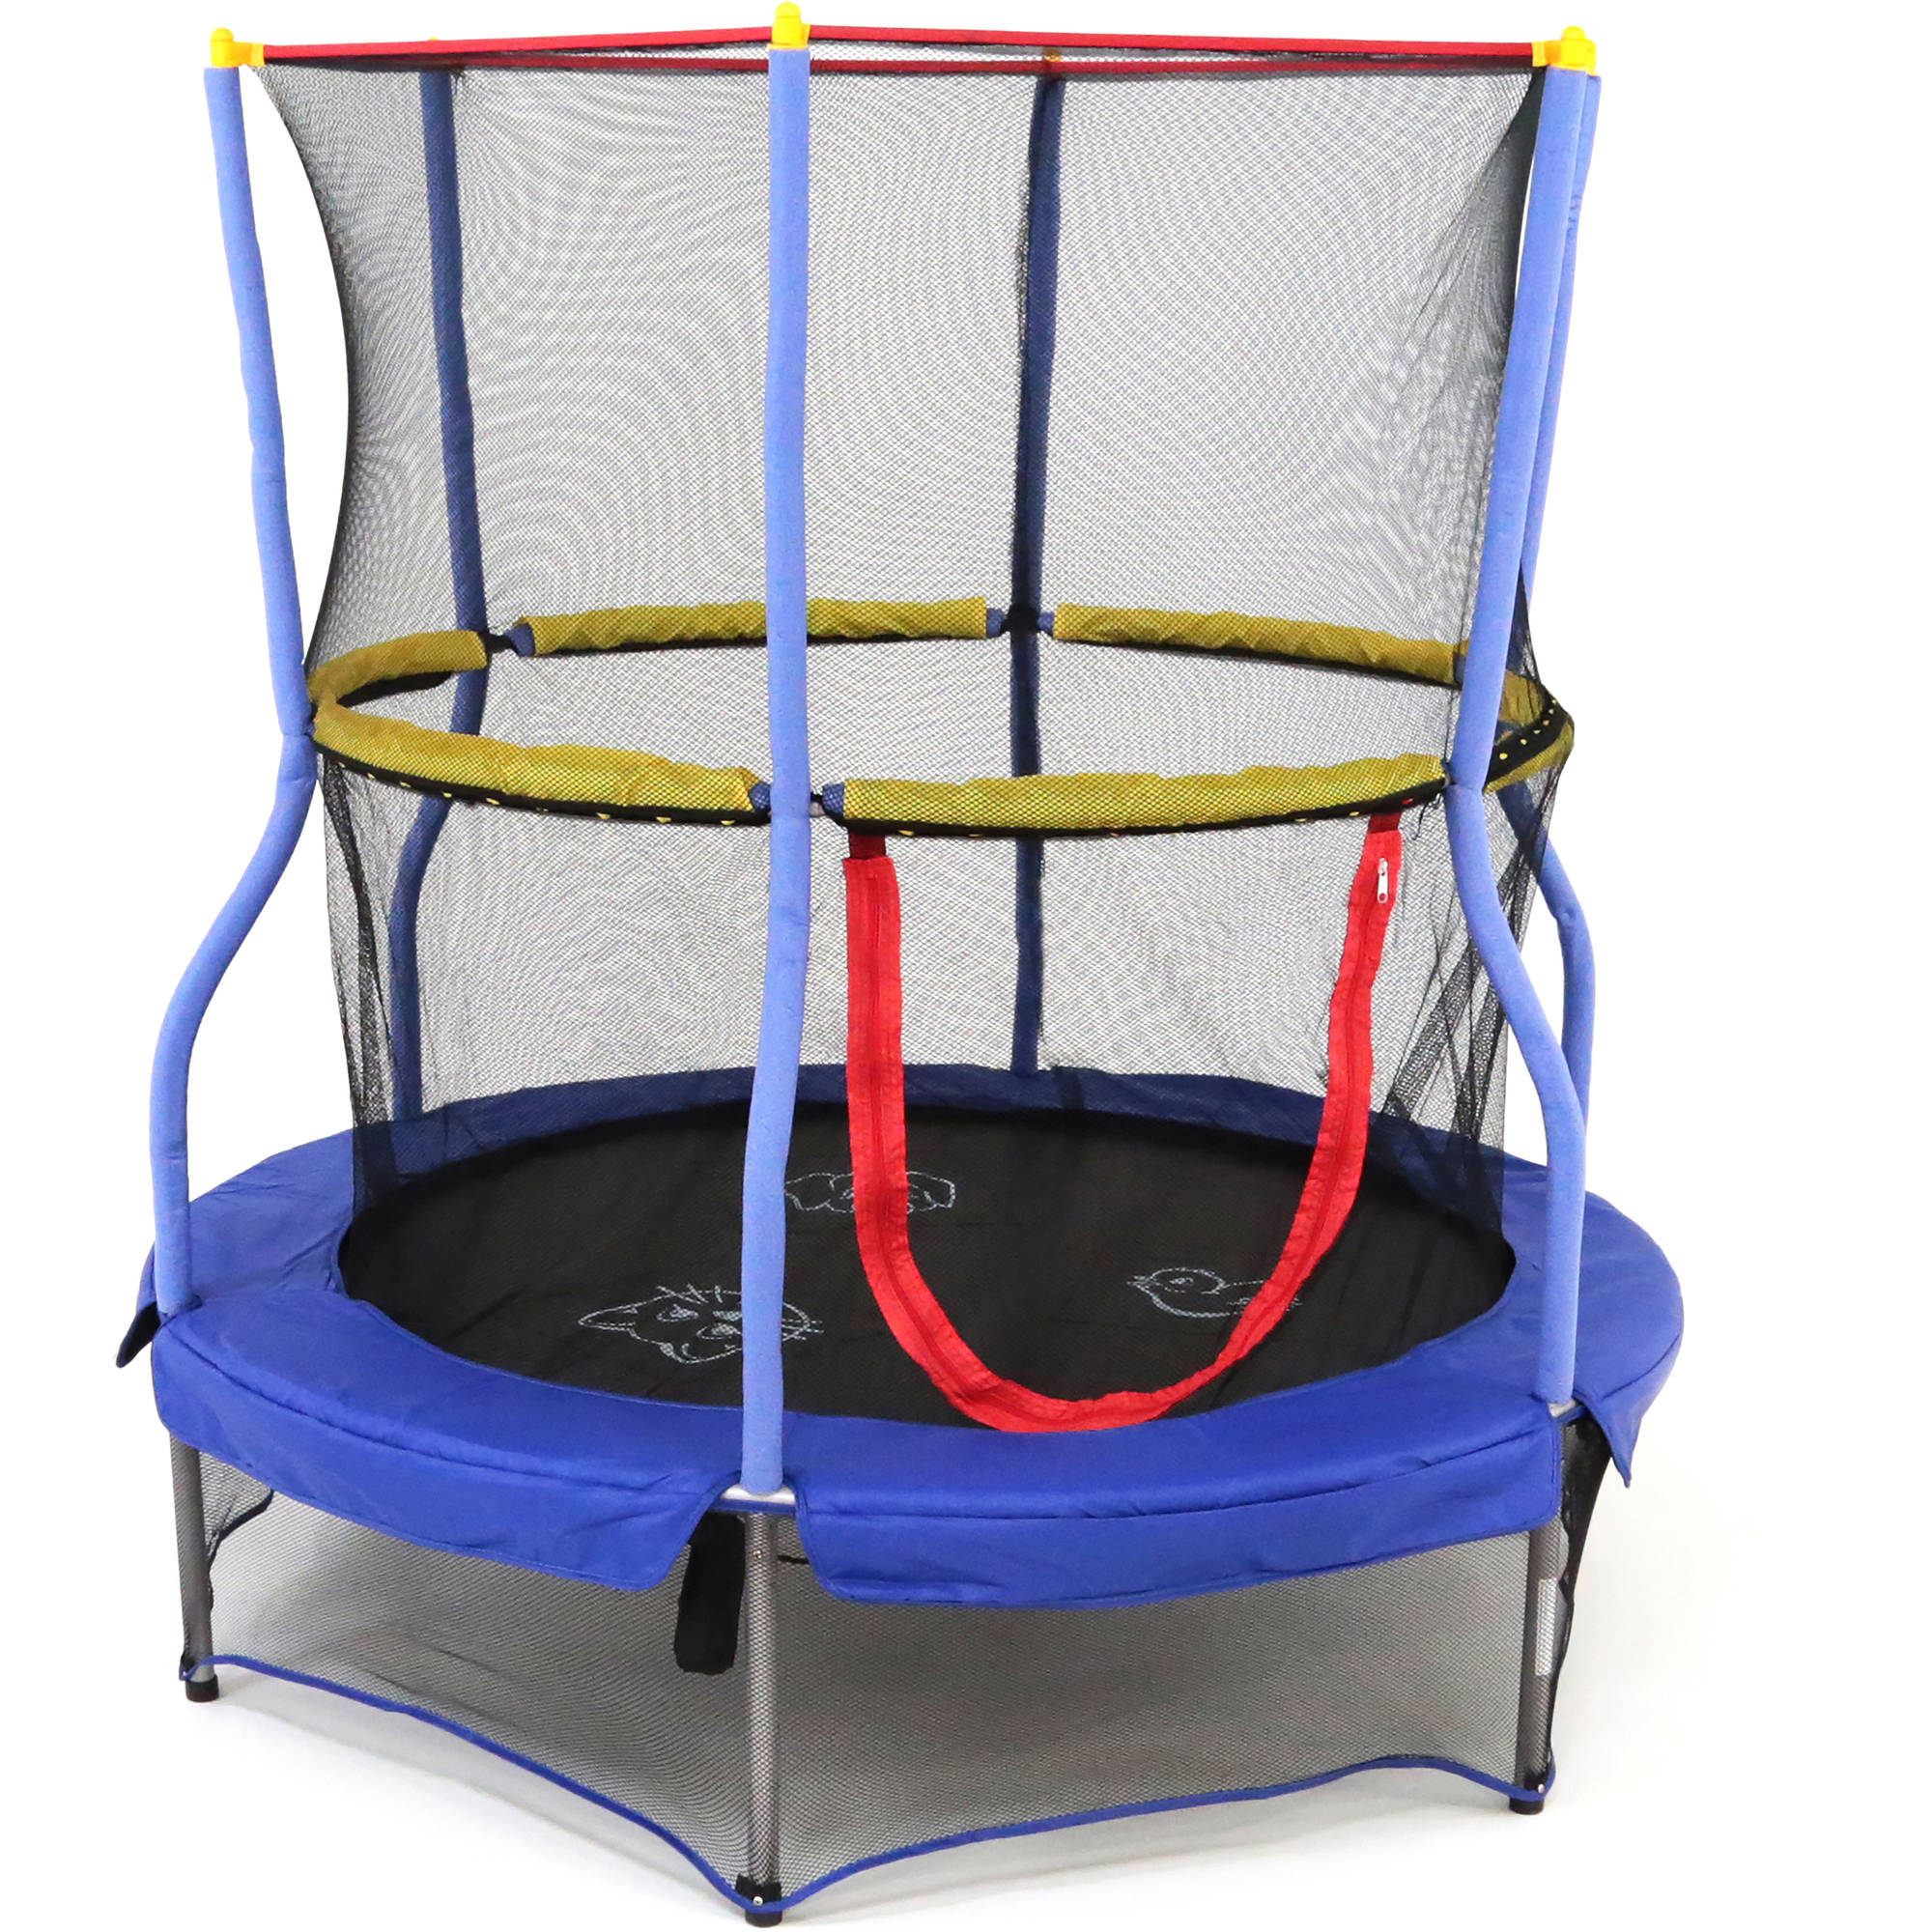 Skywalker Tr&olines 55-Inch Bounce-N-Learn Interactive Mini Bouncer Tr&oline with Safety Enclosure and Sound Blue - Walmart.com  sc 1 st  Walmart & Skywalker Trampolines 55-Inch Bounce-N-Learn Interactive Mini ...